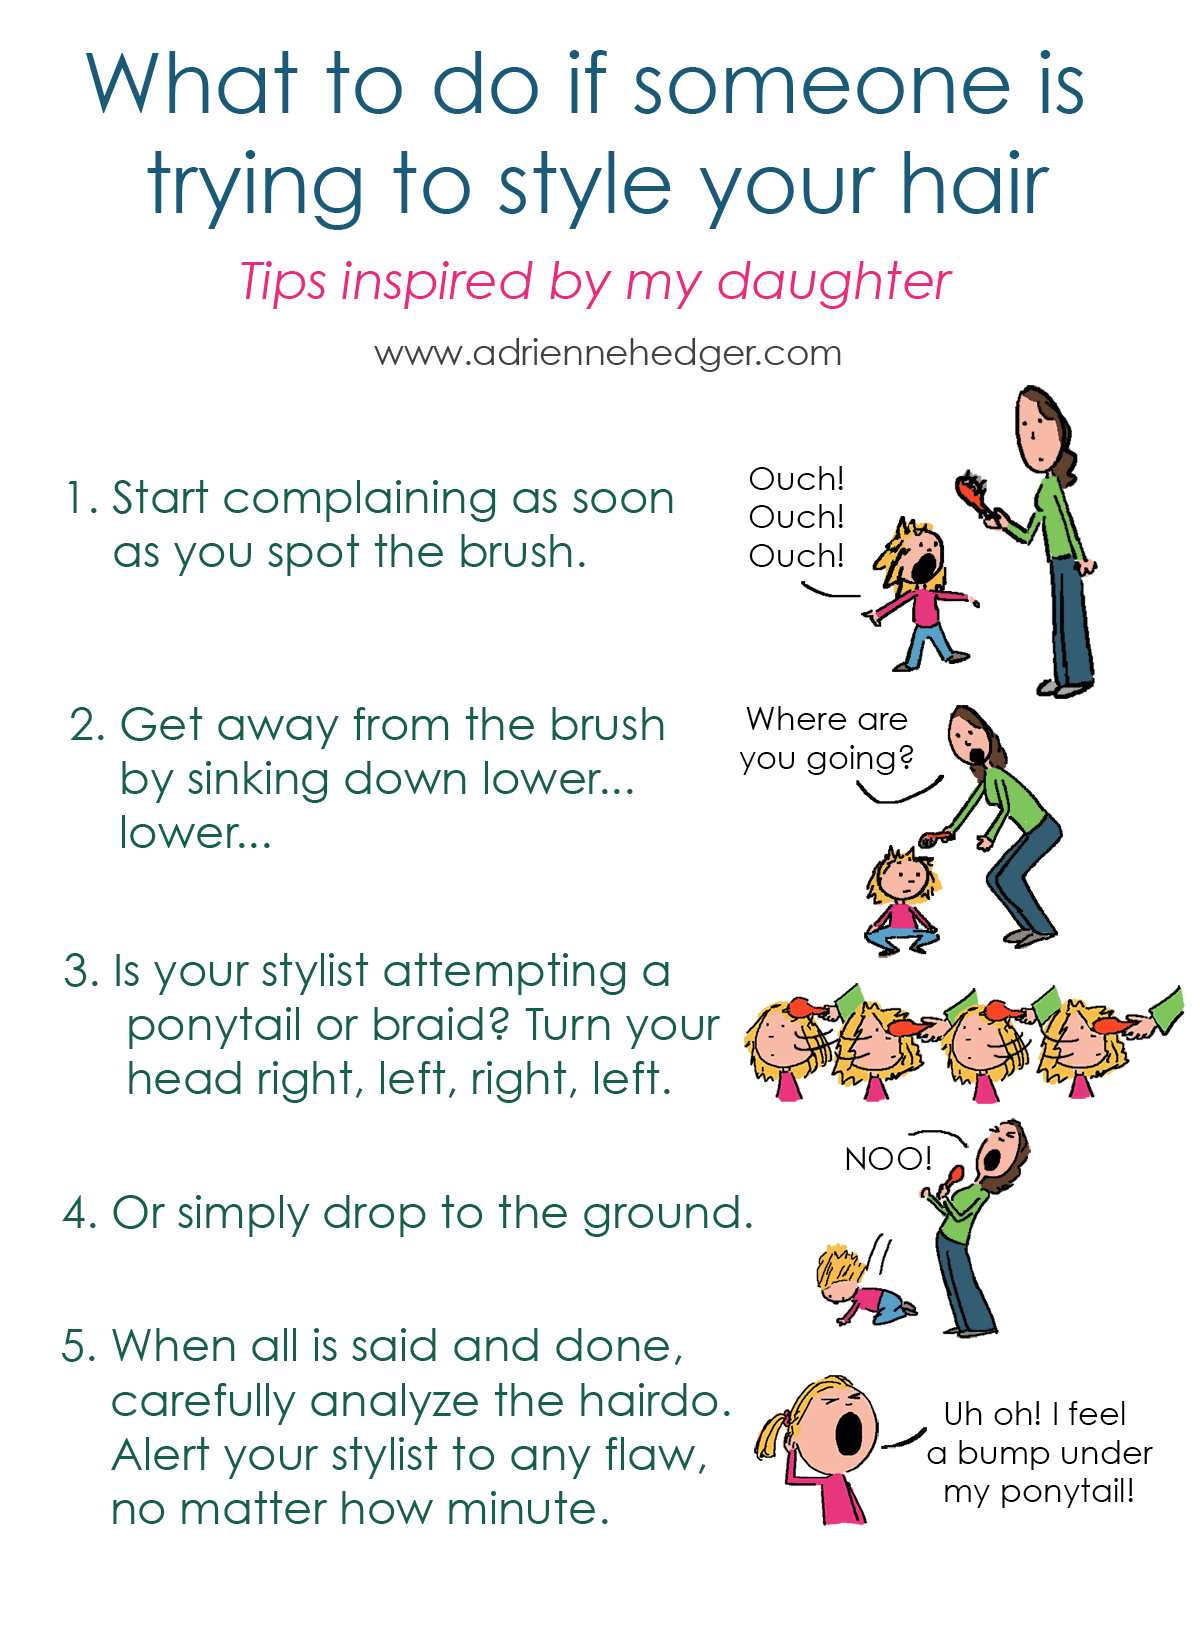 Hairstyling Tips According to My Daughter 1200